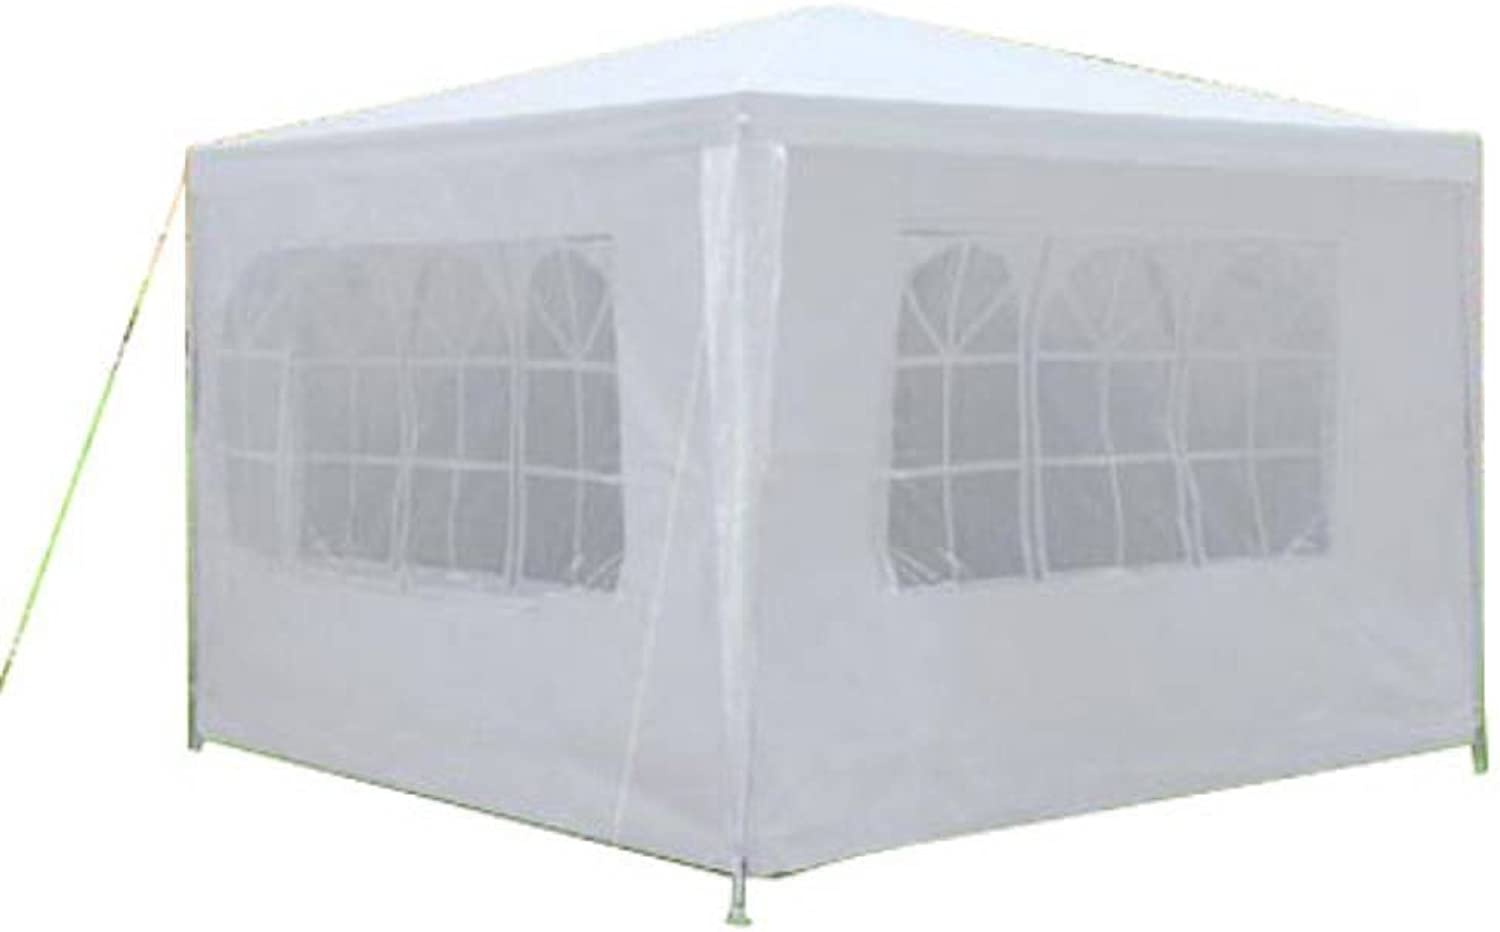 Gkdicet White Three Sides Waterproof Foldable Tent Gazebo Outdoor Sunshade Cover